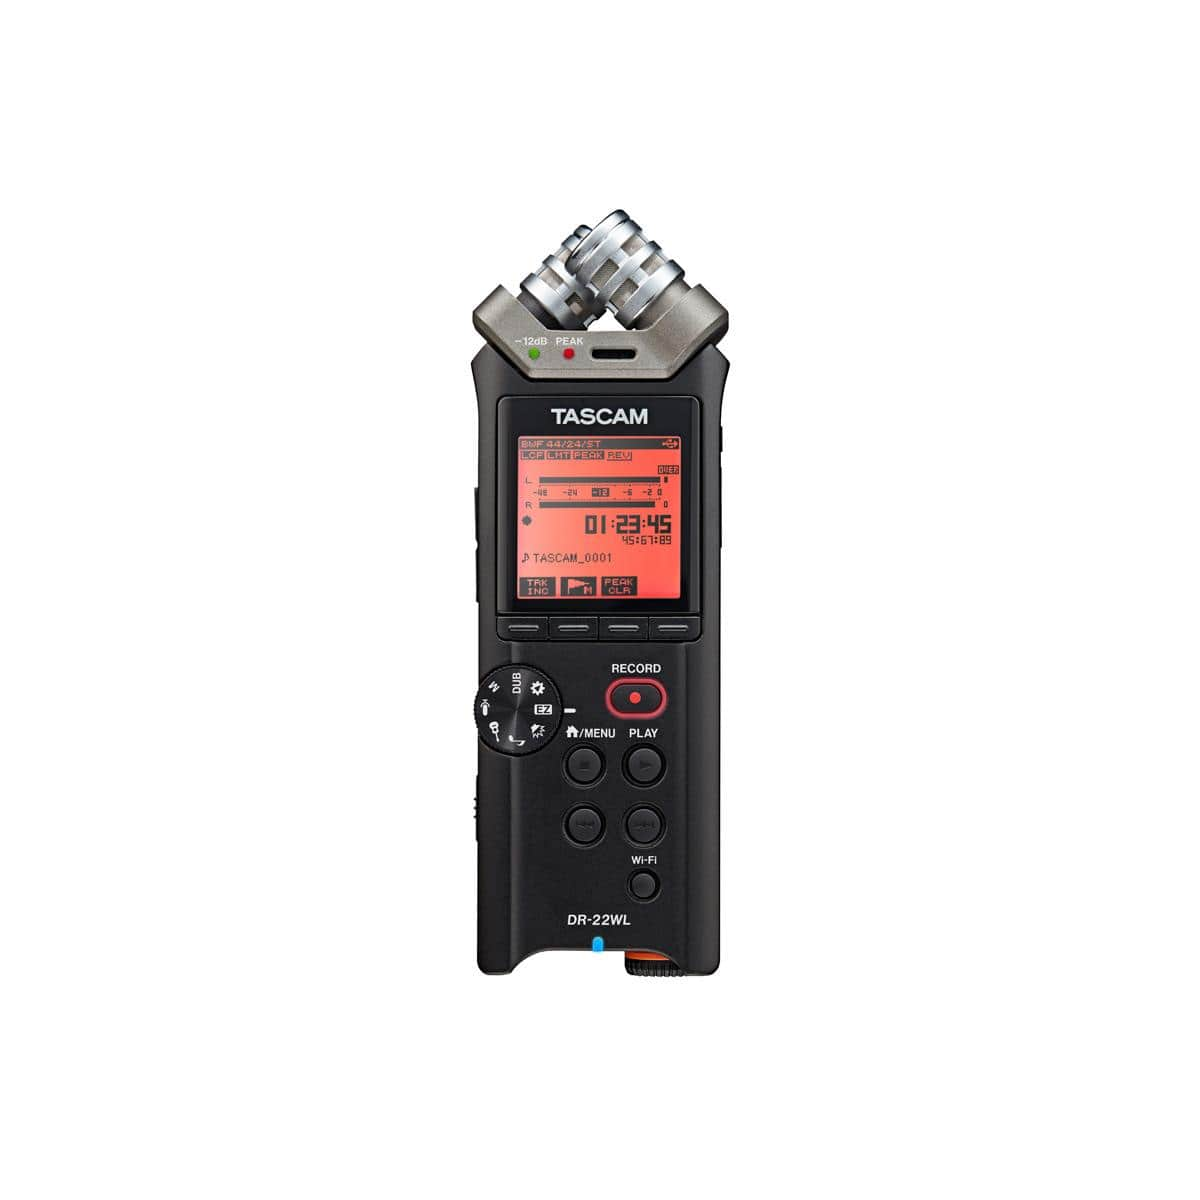 Tascam DR-22WL 2-Channel Handheld Audio Recorder w/ WiFi  $79 + Free Shipping